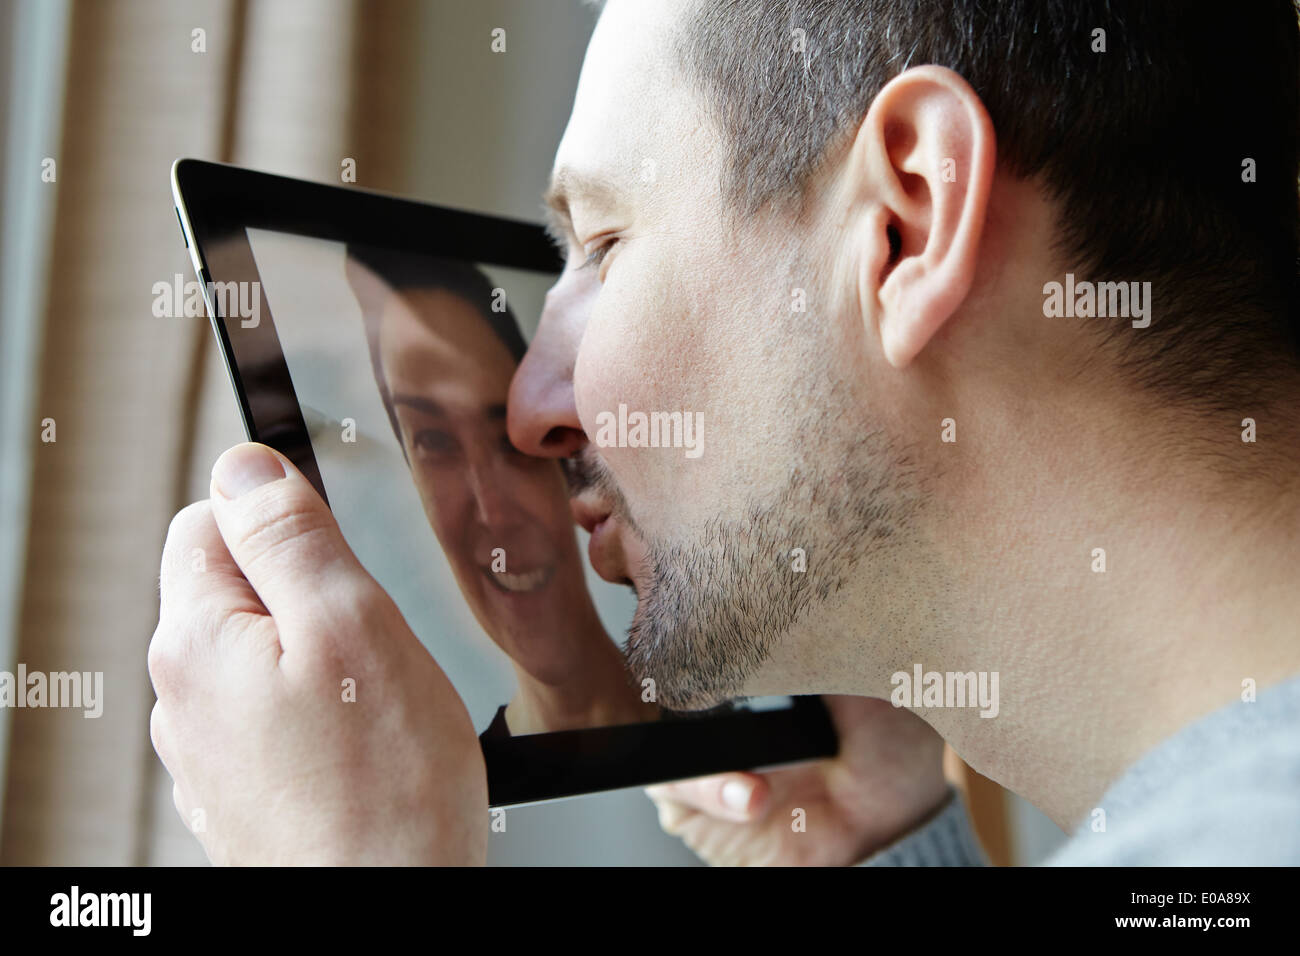 Mid adult man kissing screen of digital tablet - Stock Image